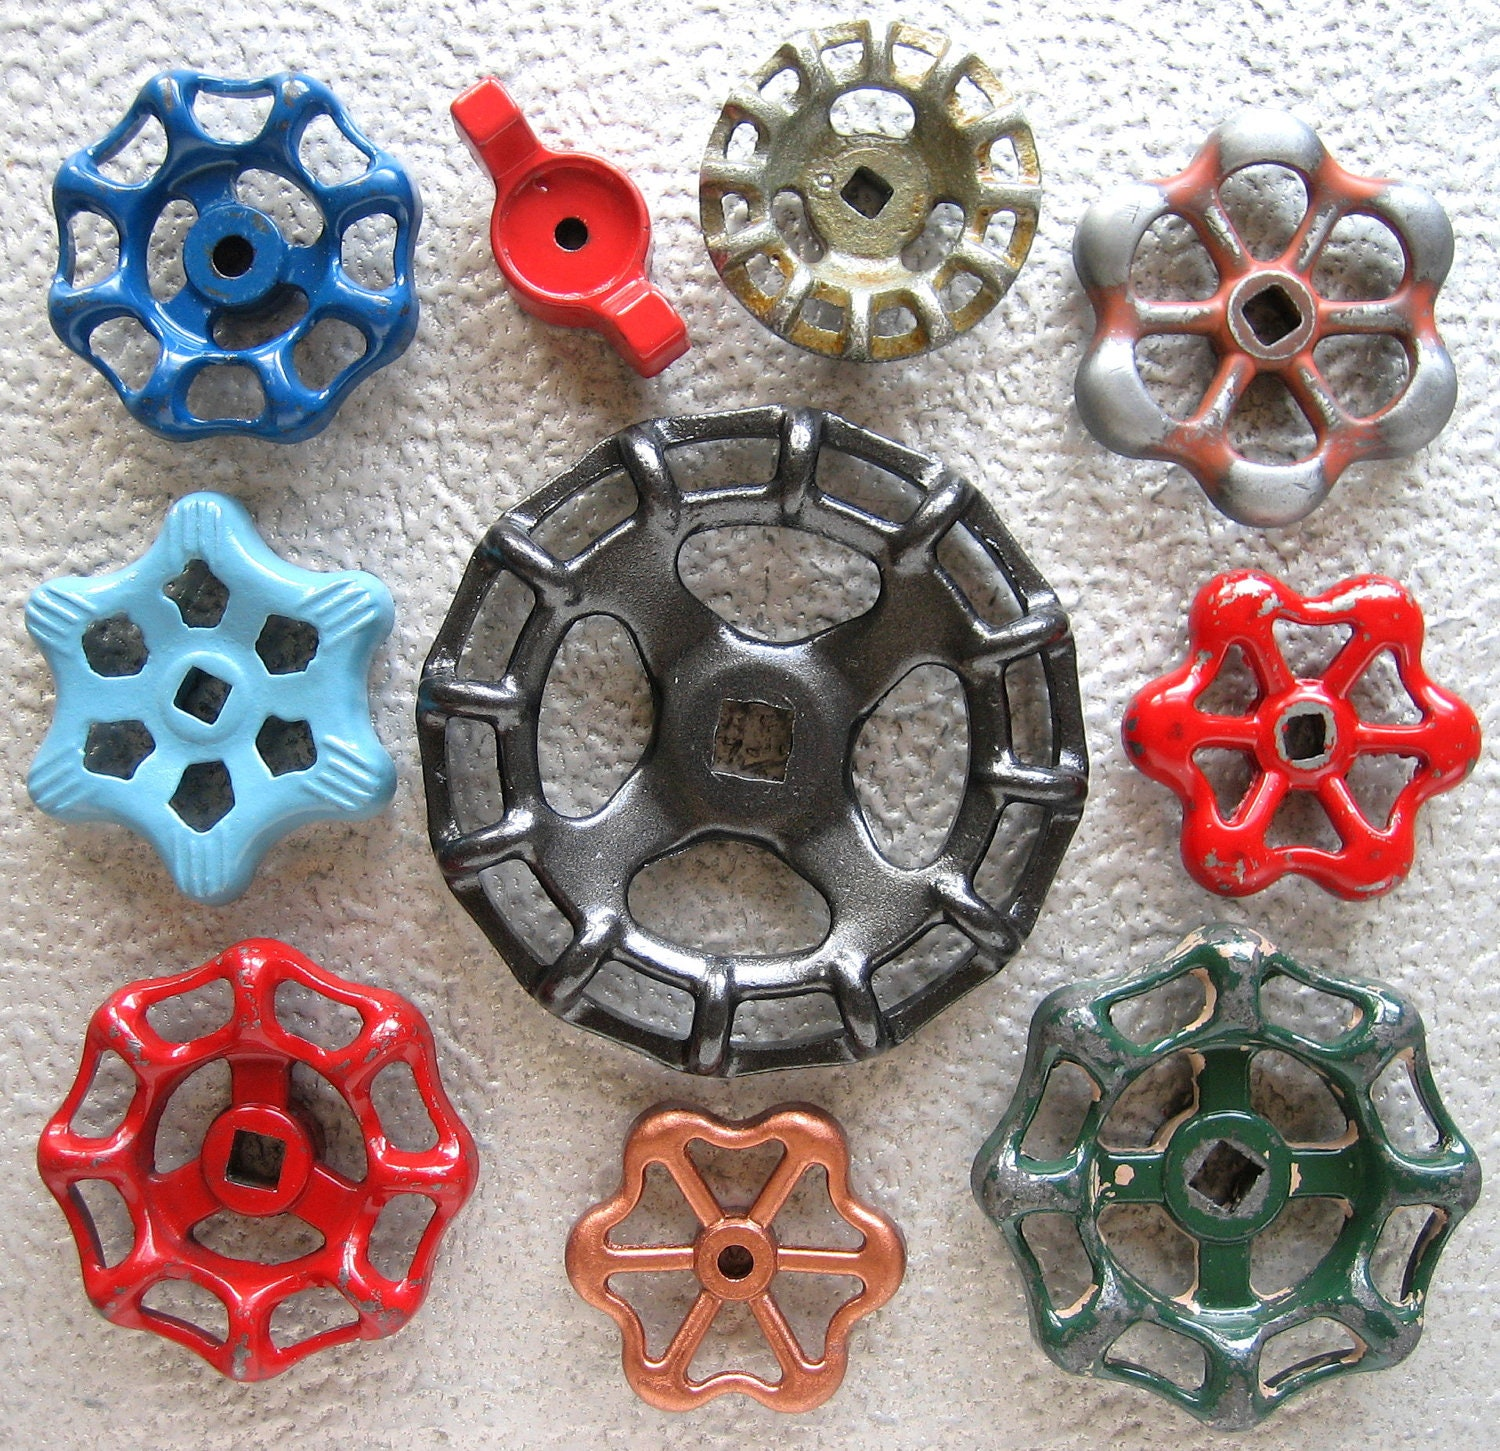 Colorful group of Vintage Valve Handles, Garden decor, Steampunk,  Assemblage, Industrial, Collection of 10 Aluminum